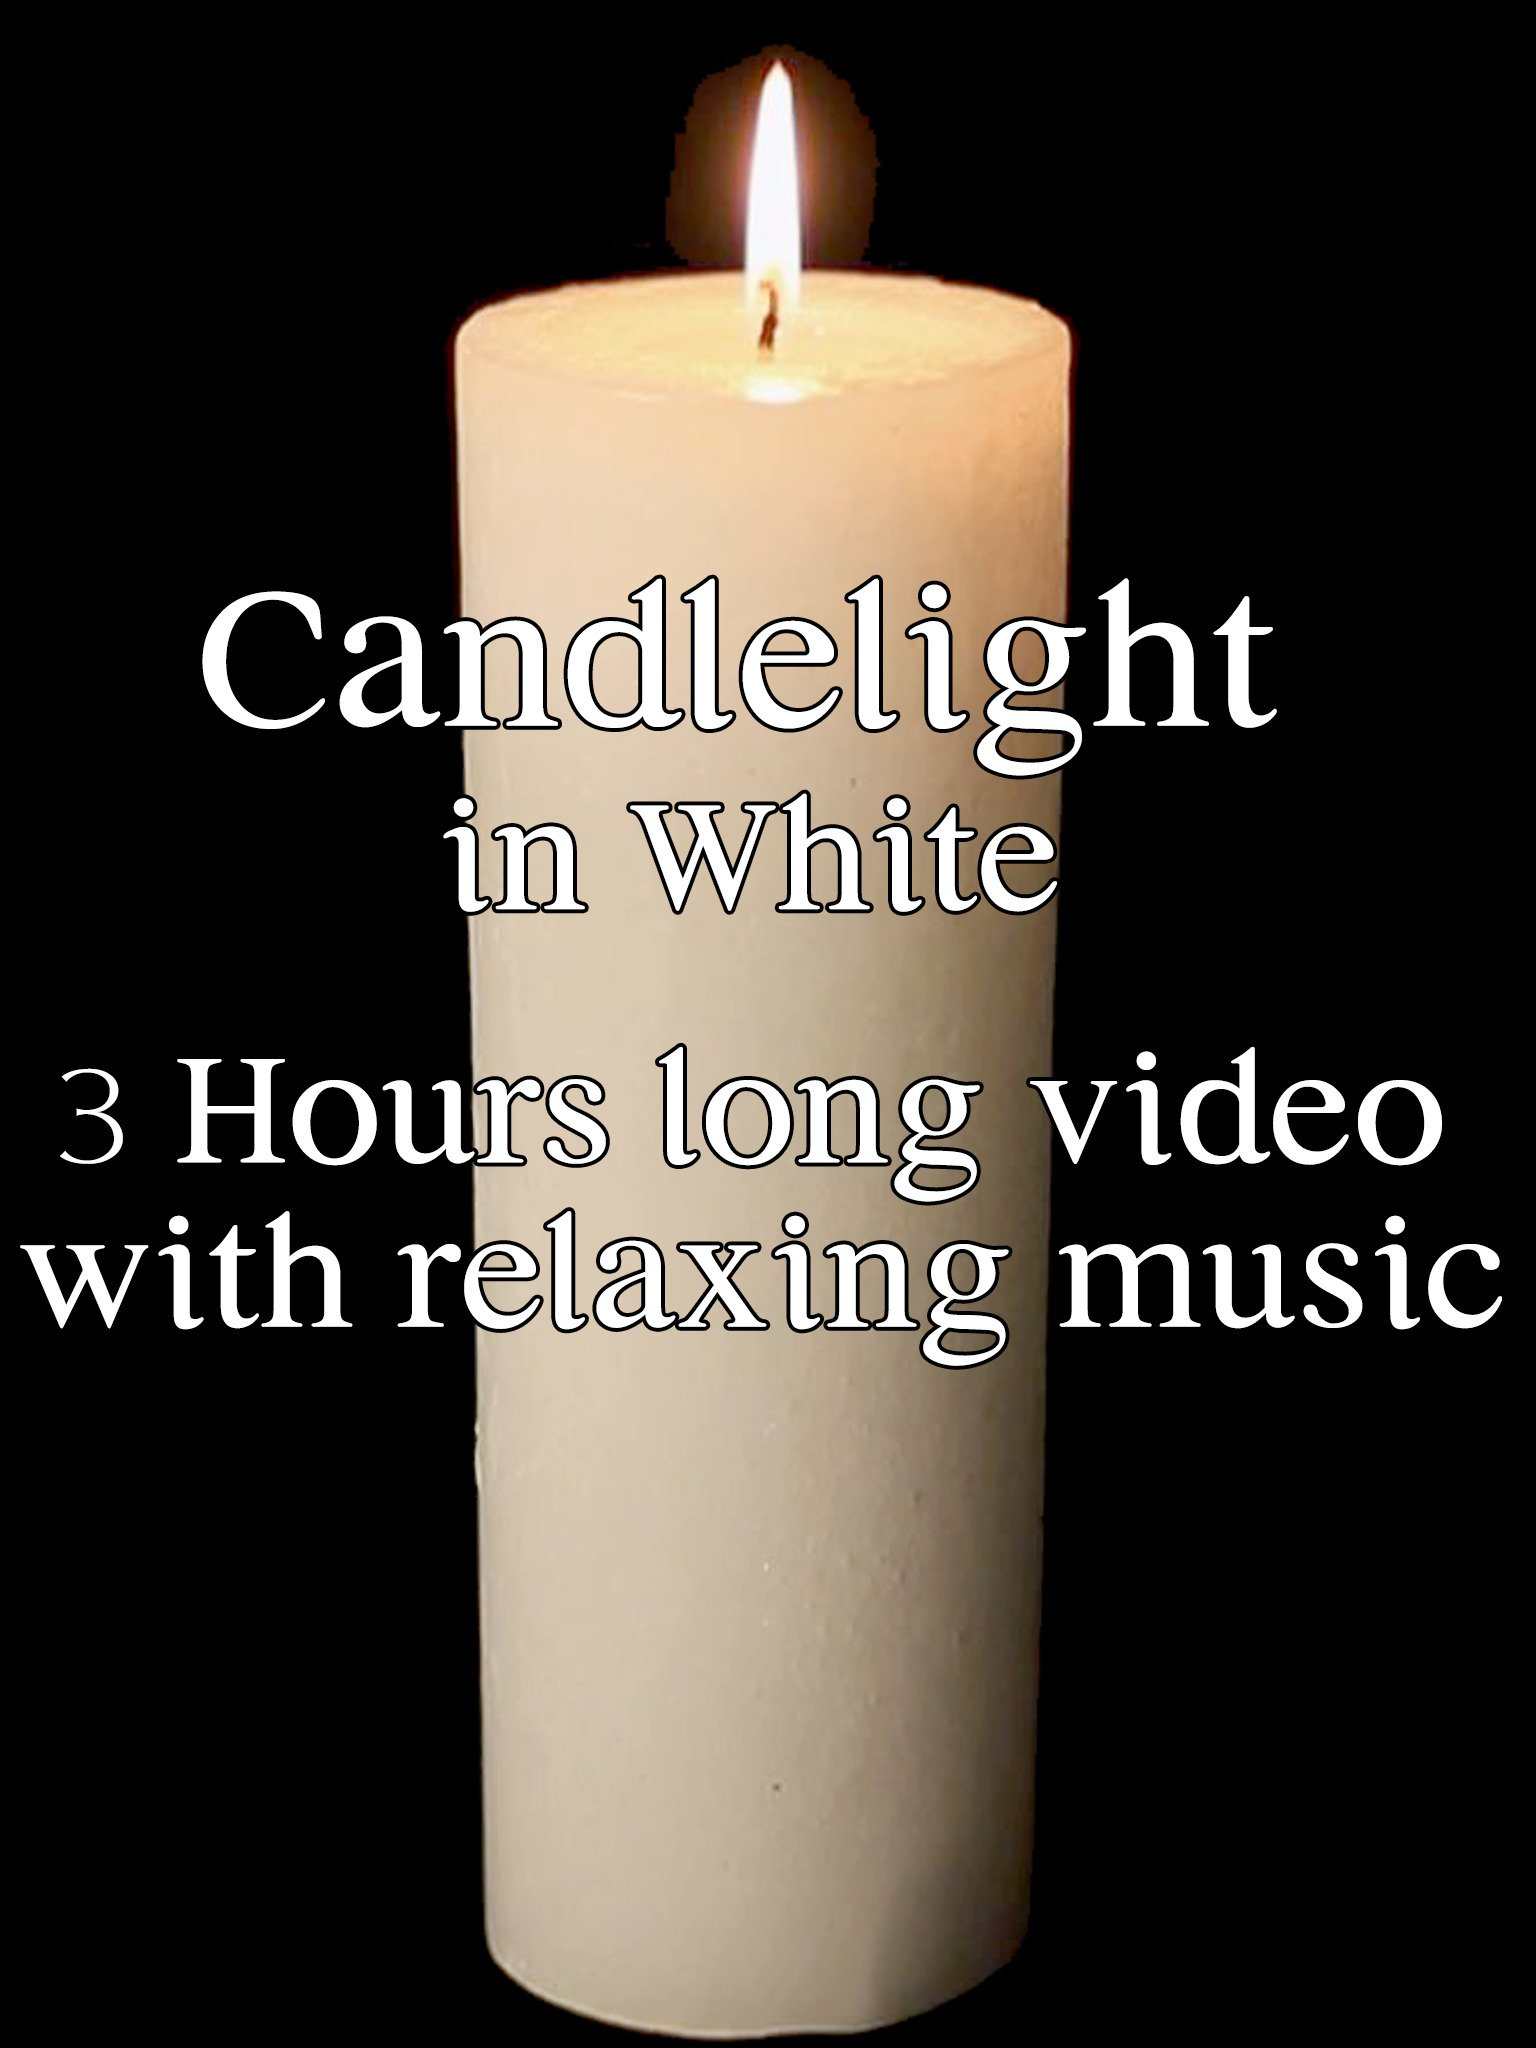 Candlelight in White